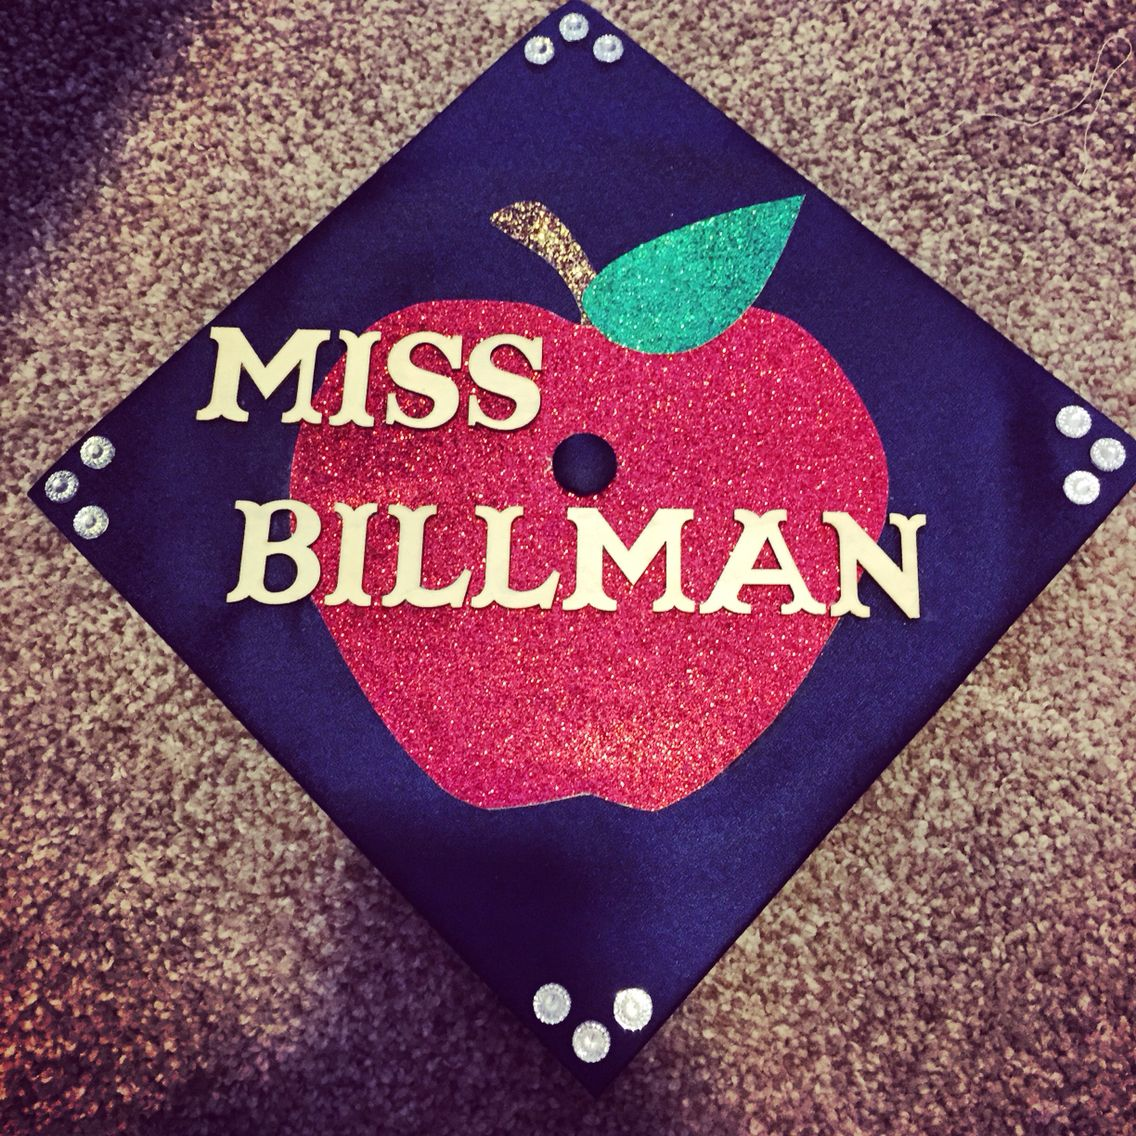 Decorating graduation cap ideas for teachers - Graduation Cap For Teacher